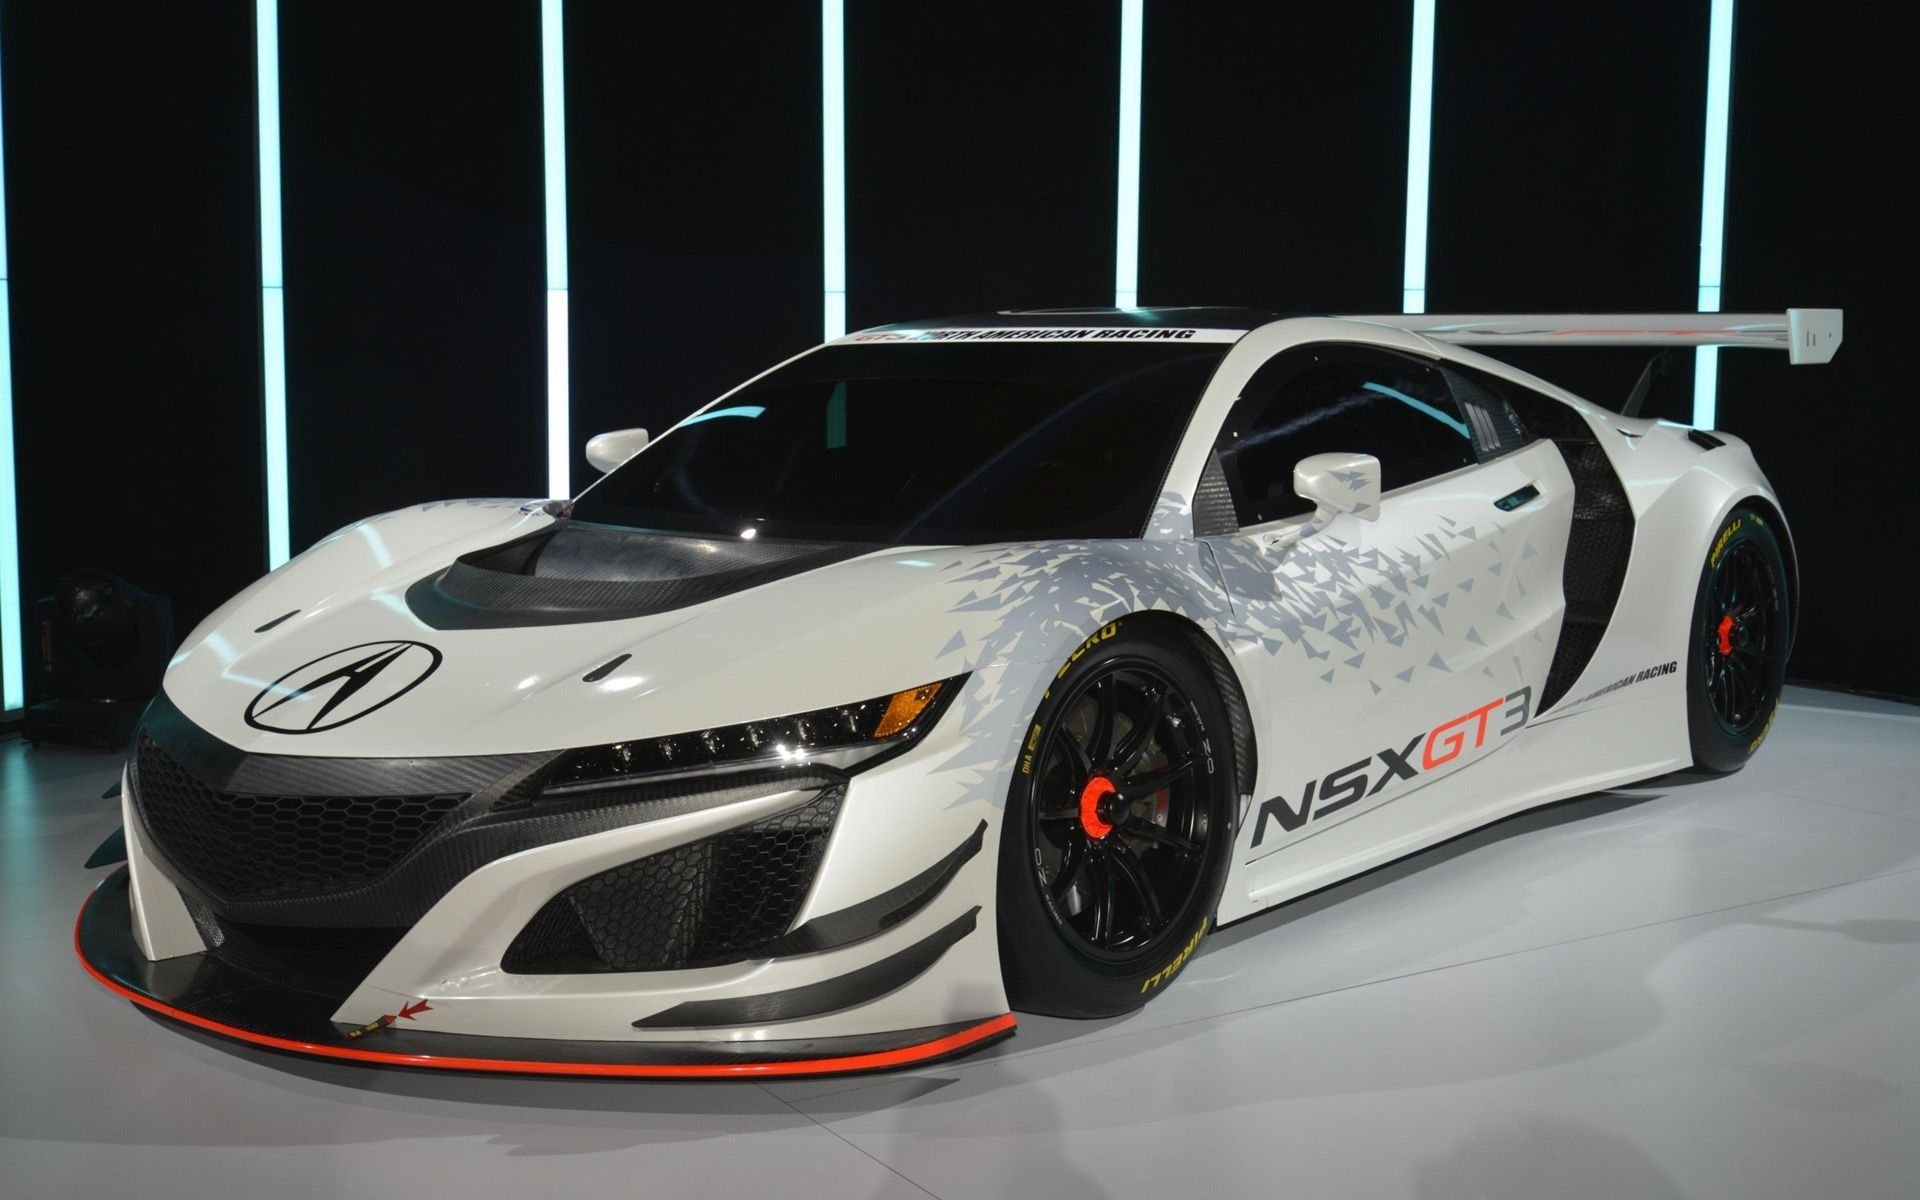 The 2020 Honda Nsx Redesign And Concept Nsx Acura Nsx Acura Nsx Gt3